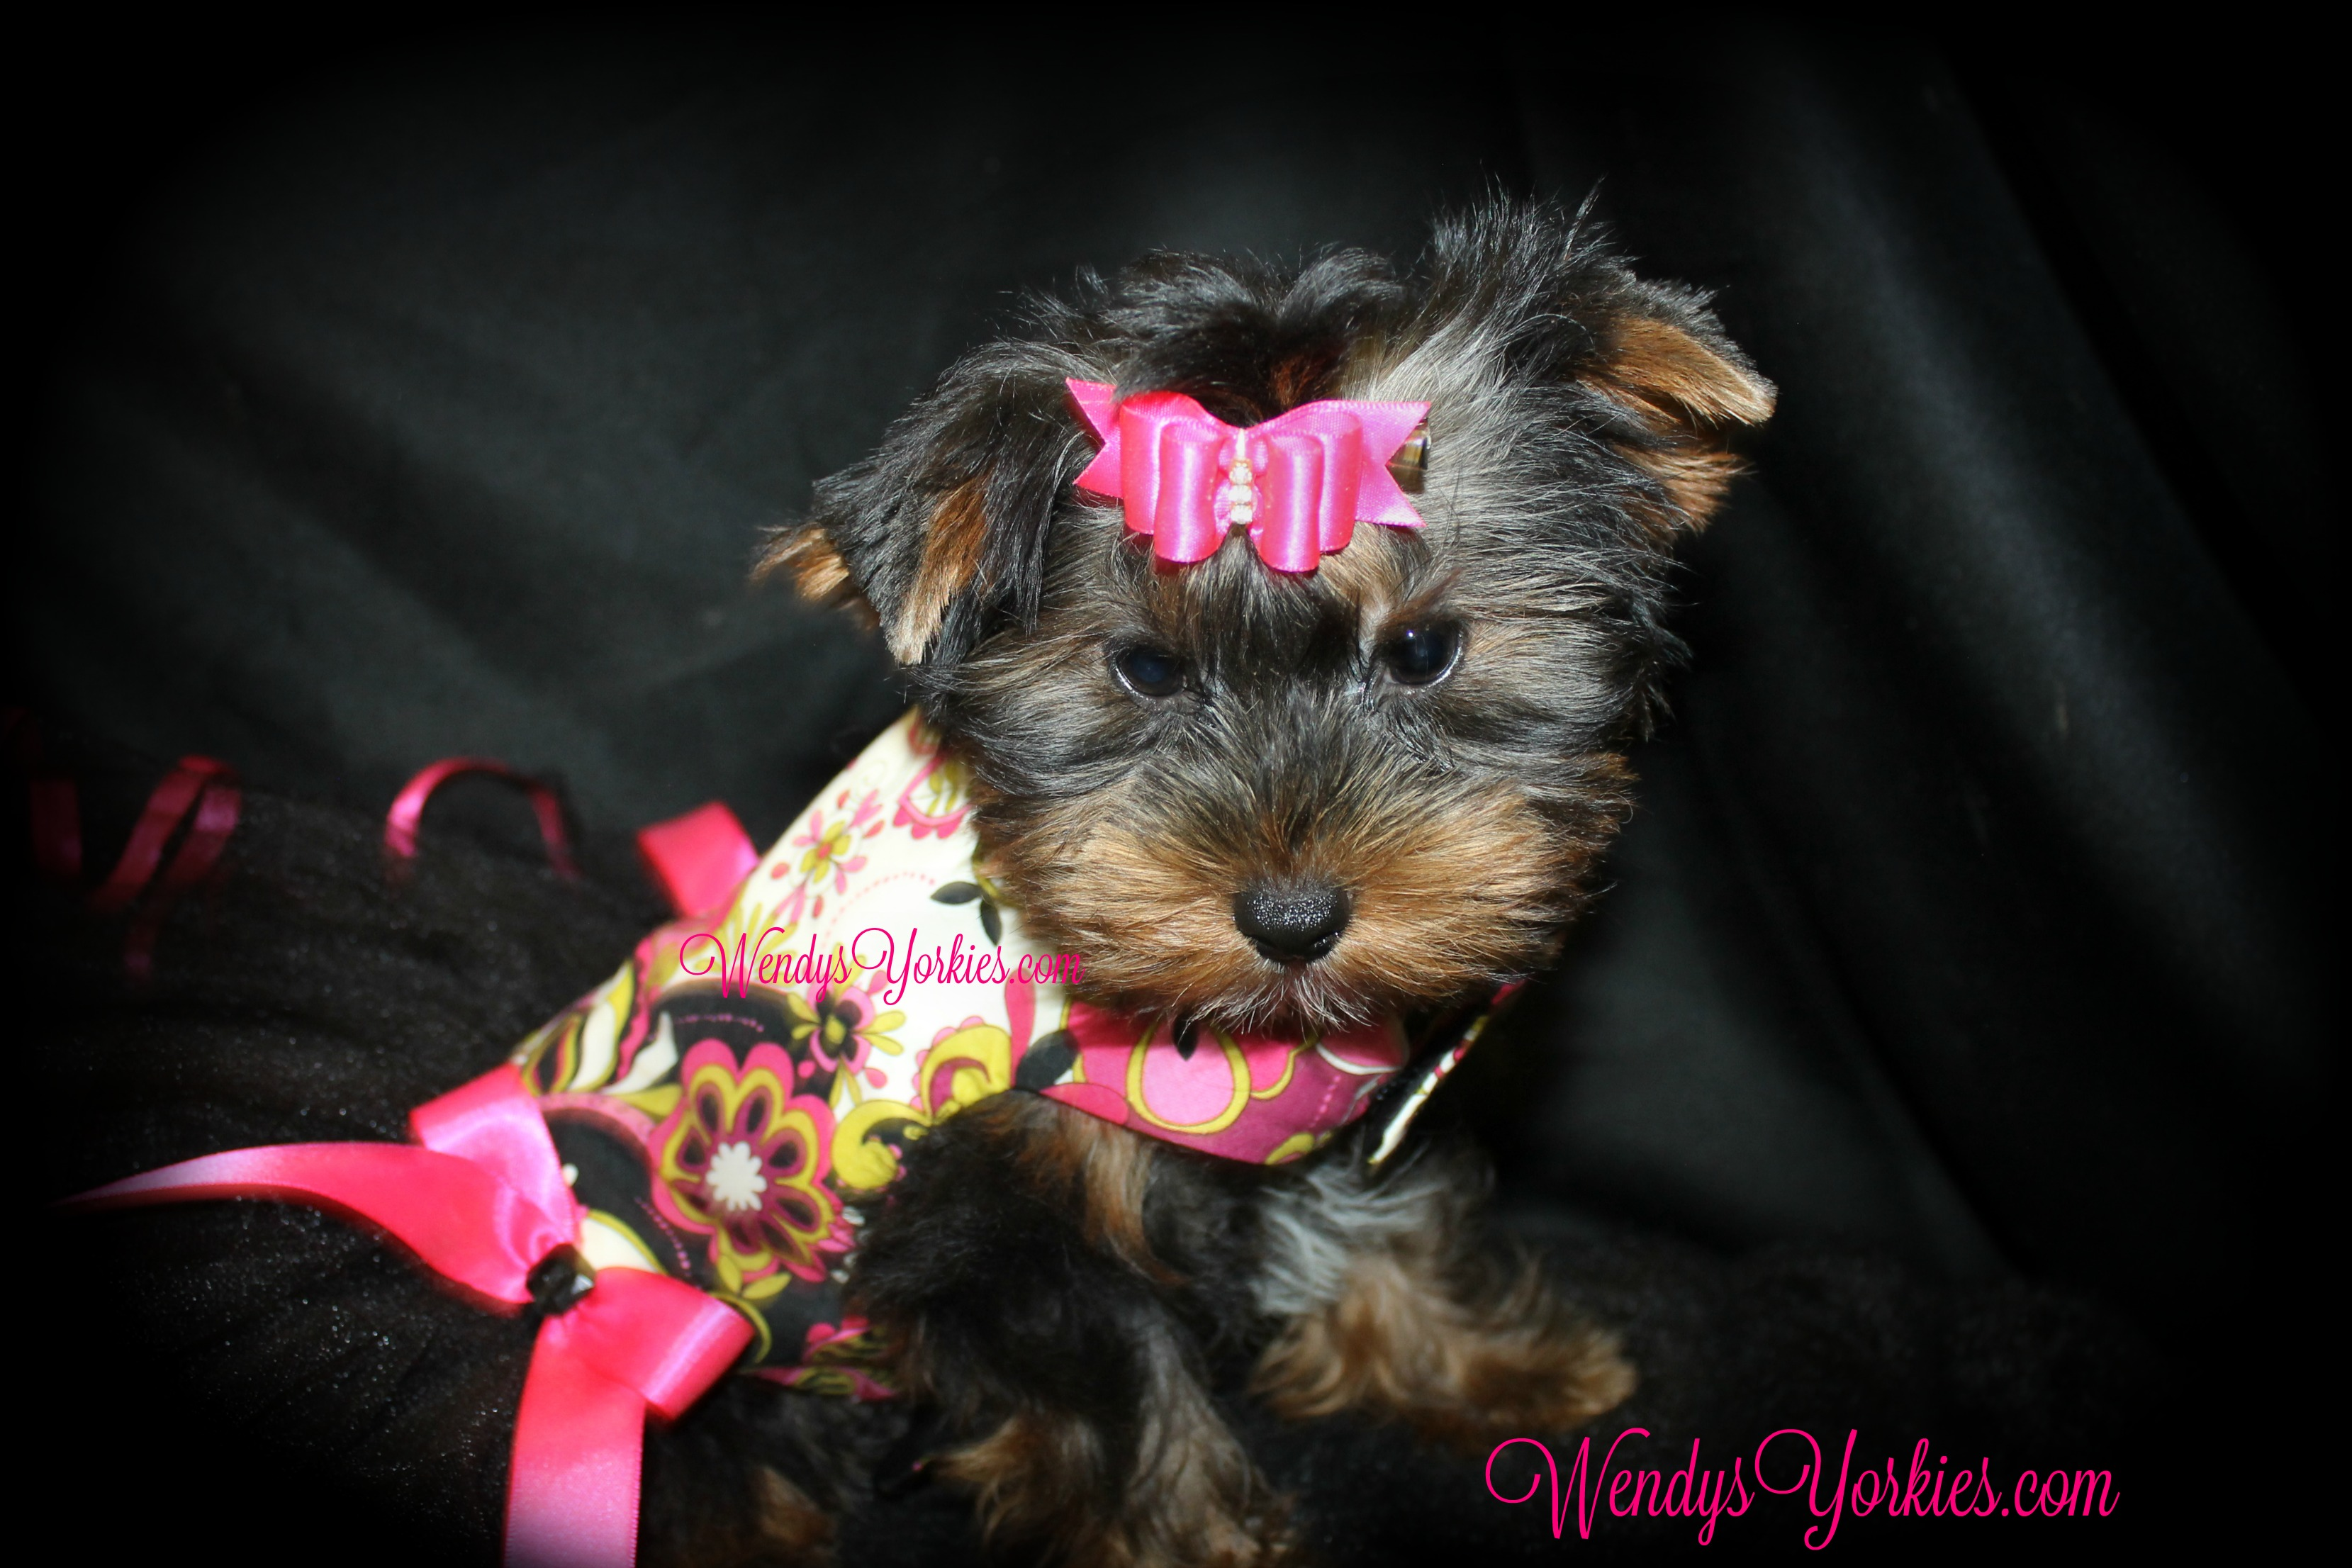 Teacup female Yorkie puppies for sale, WendysYorkies, ChanelFancy